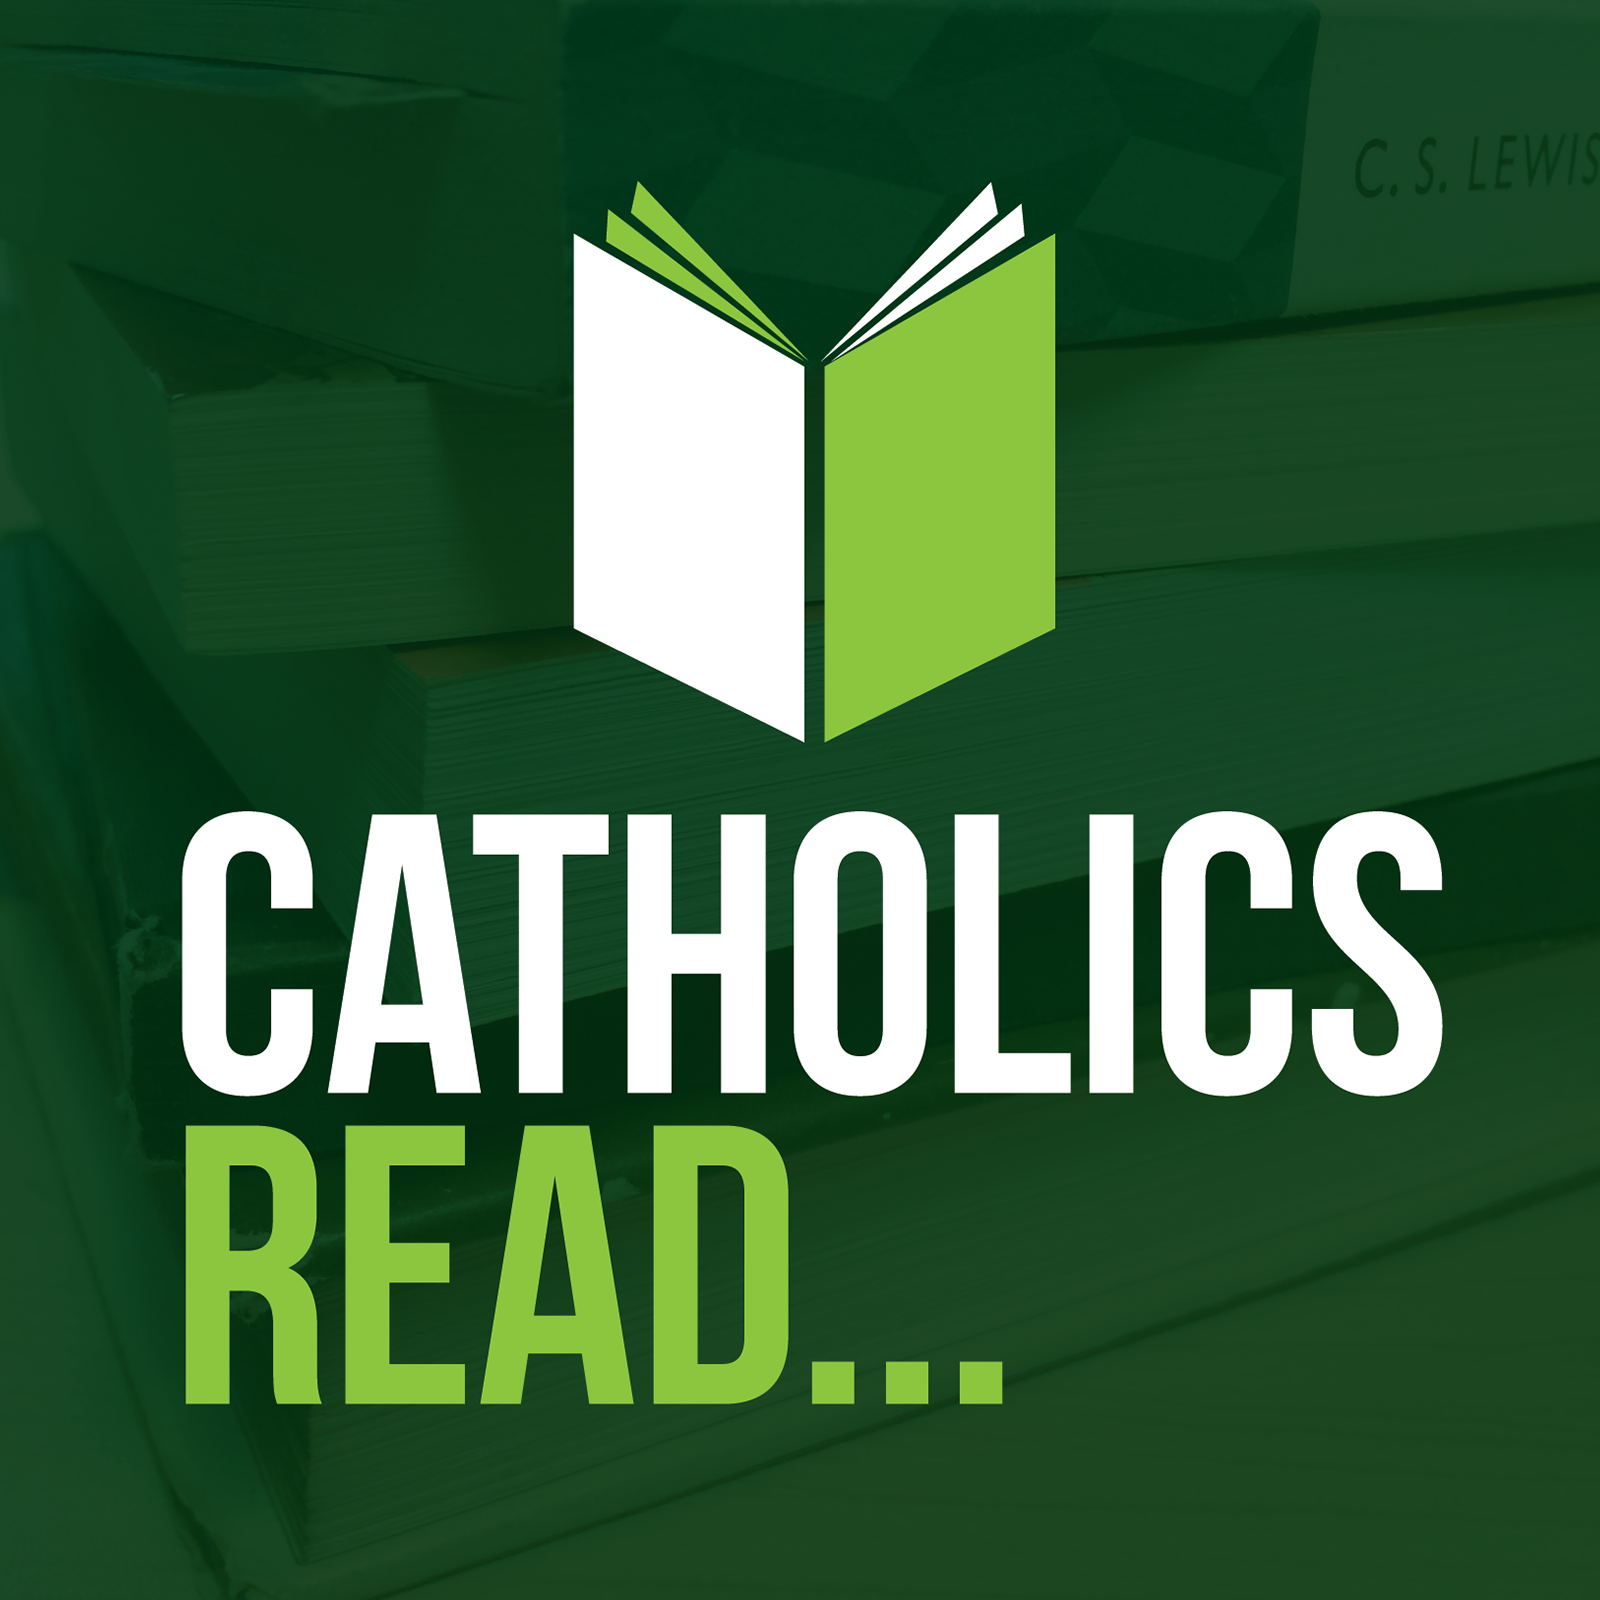 Catholics Read...